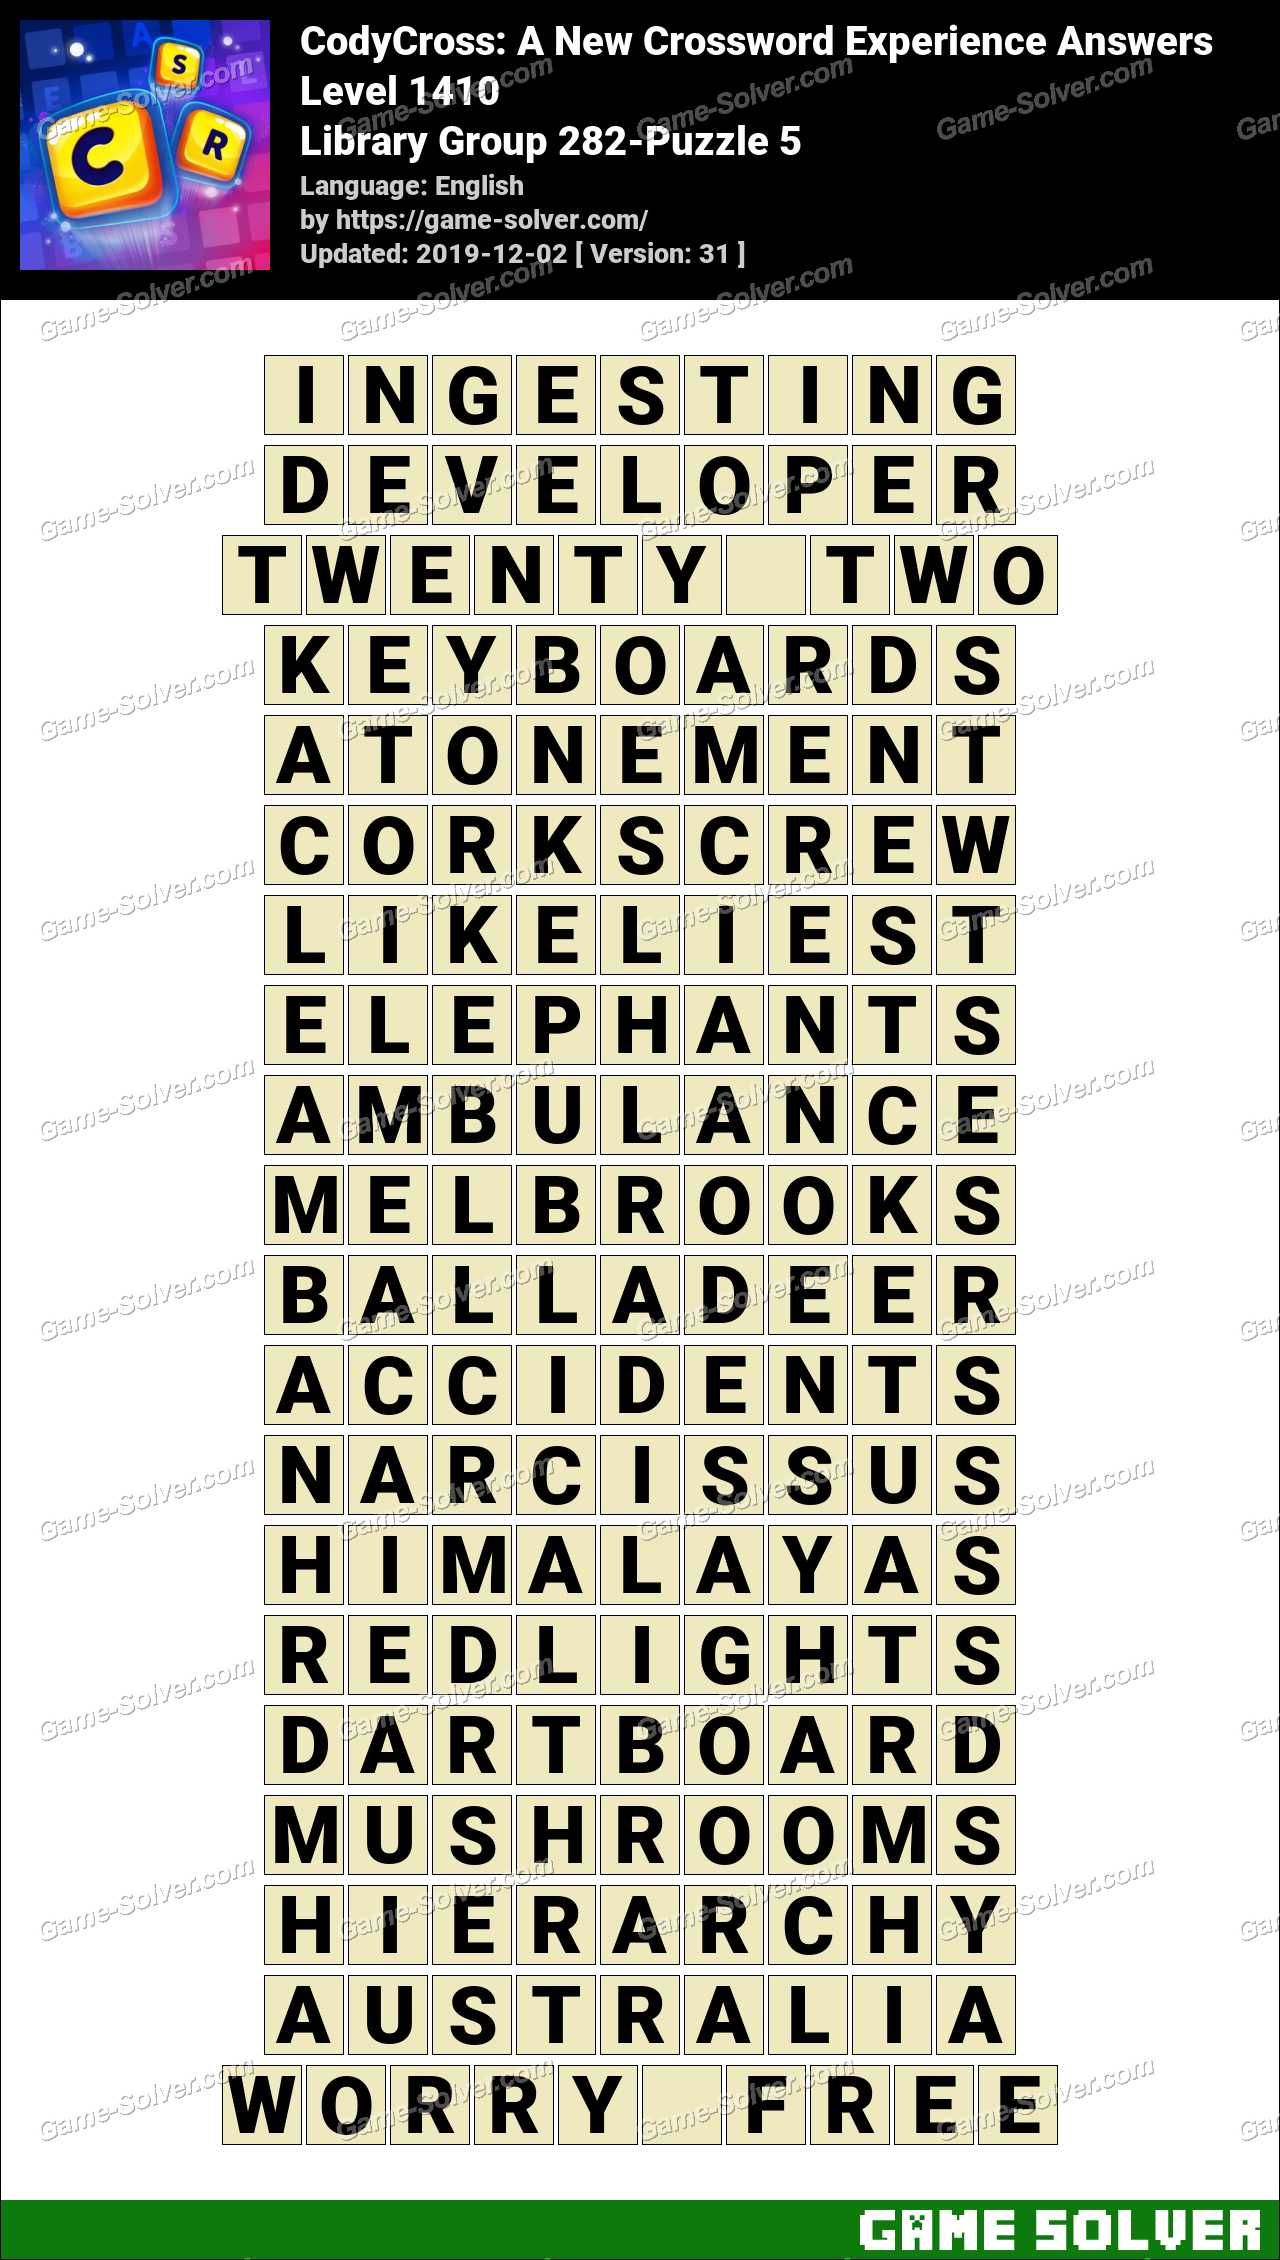 CodyCross Library Group 282-Puzzle 5 Answers